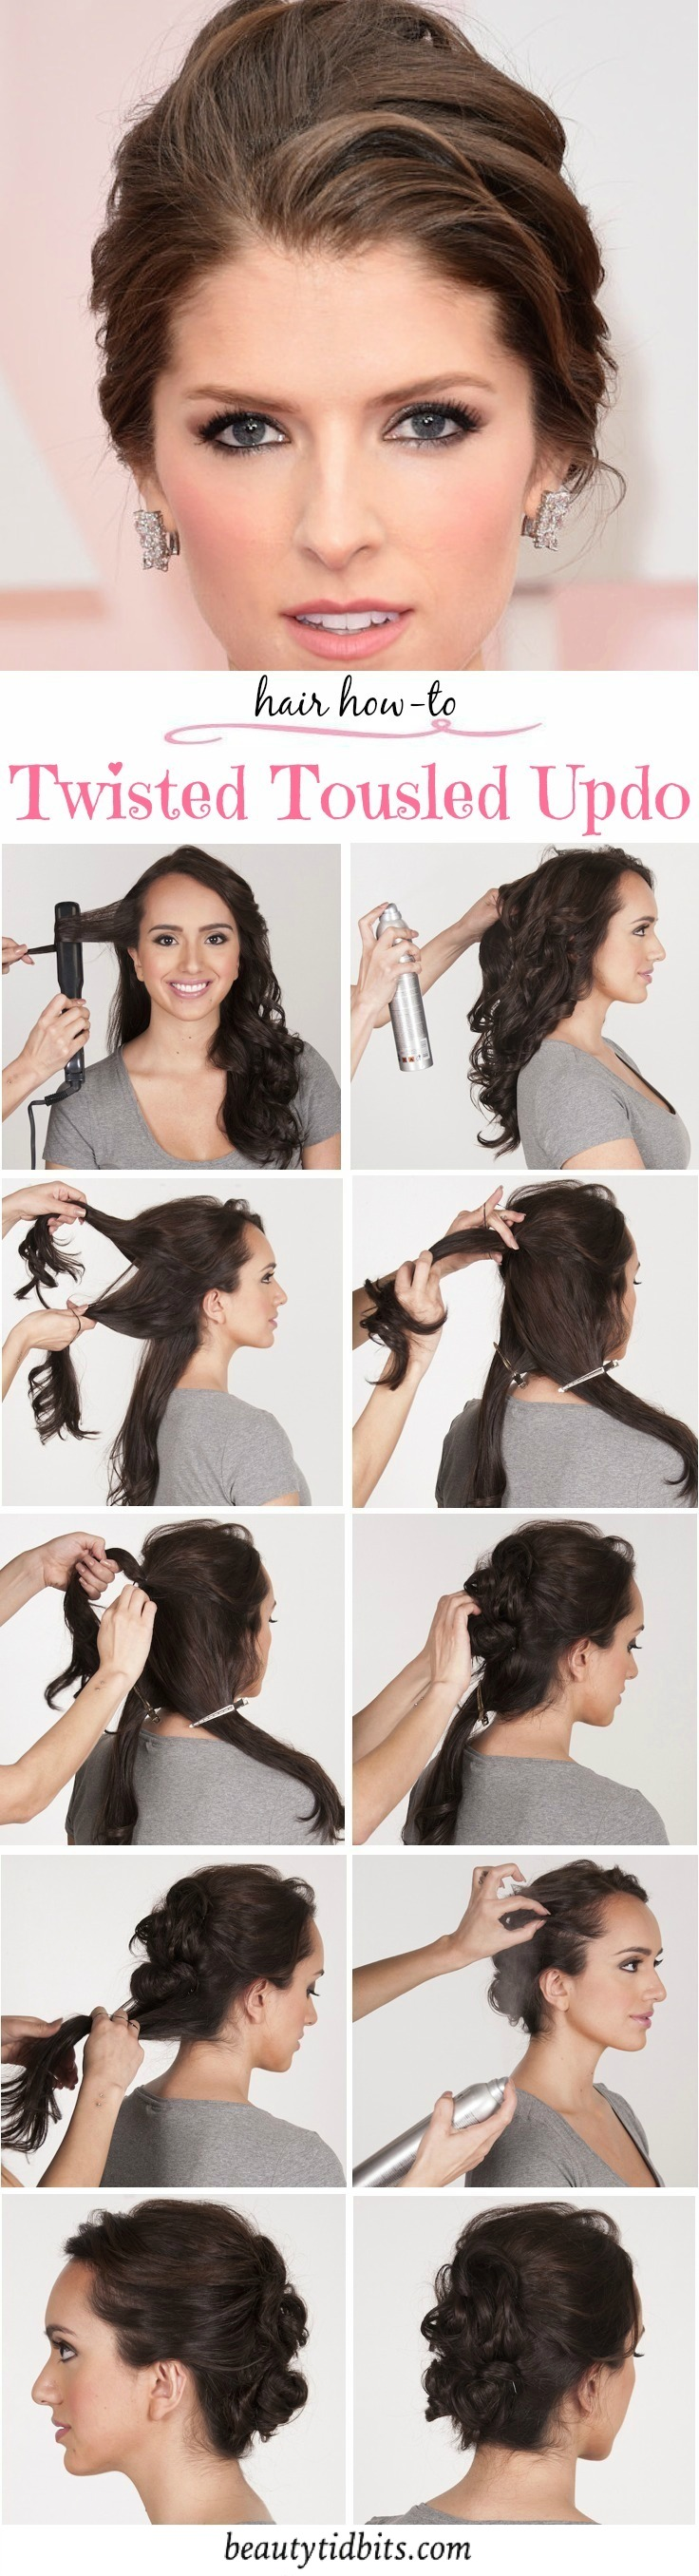 Check out this step by step hair tutorial for how to re-create this gorgeous Twisted Tousled Updo look inspired by Anna Kendrick at Oscars 2015.